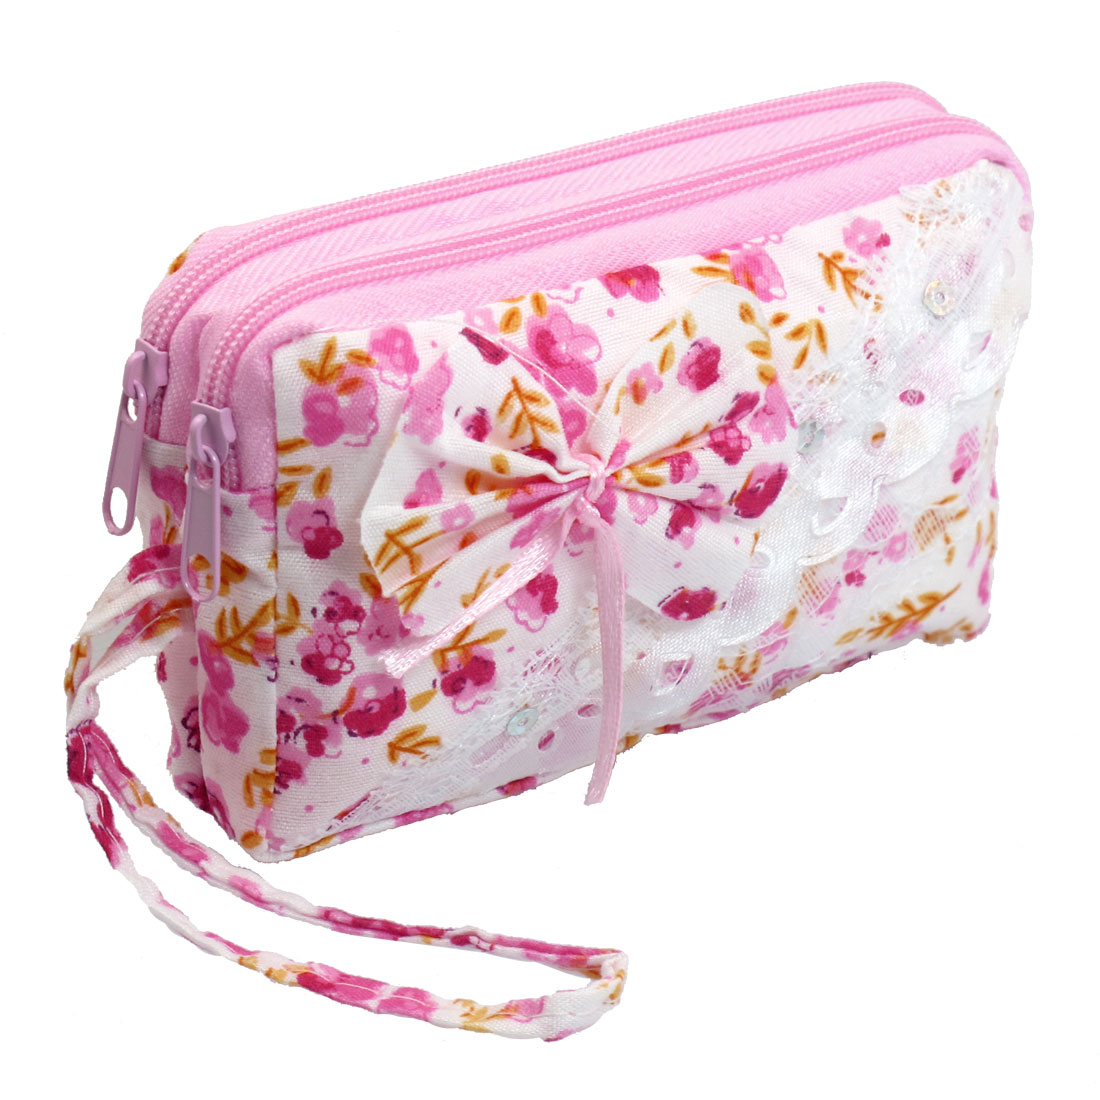 Lady Pink White 2 Compartments Paillette Accent Cell Phone Wrist Pouch